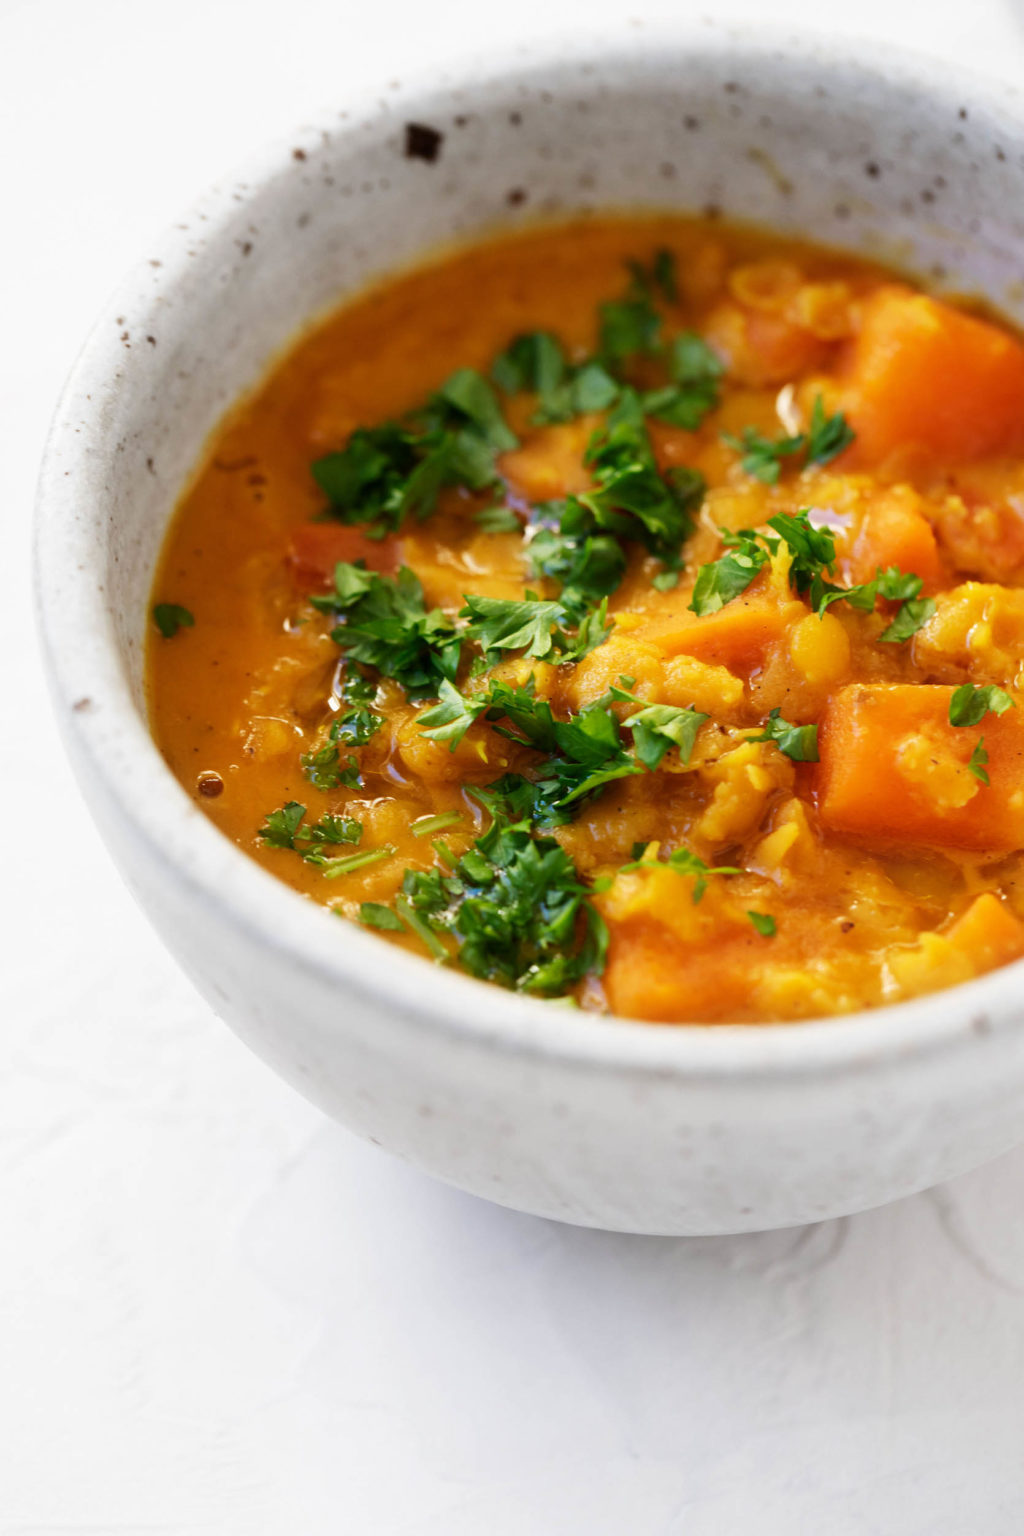 A close up photograph of curried sweet potato lentils in a small bowl, topped with chopped herbs.